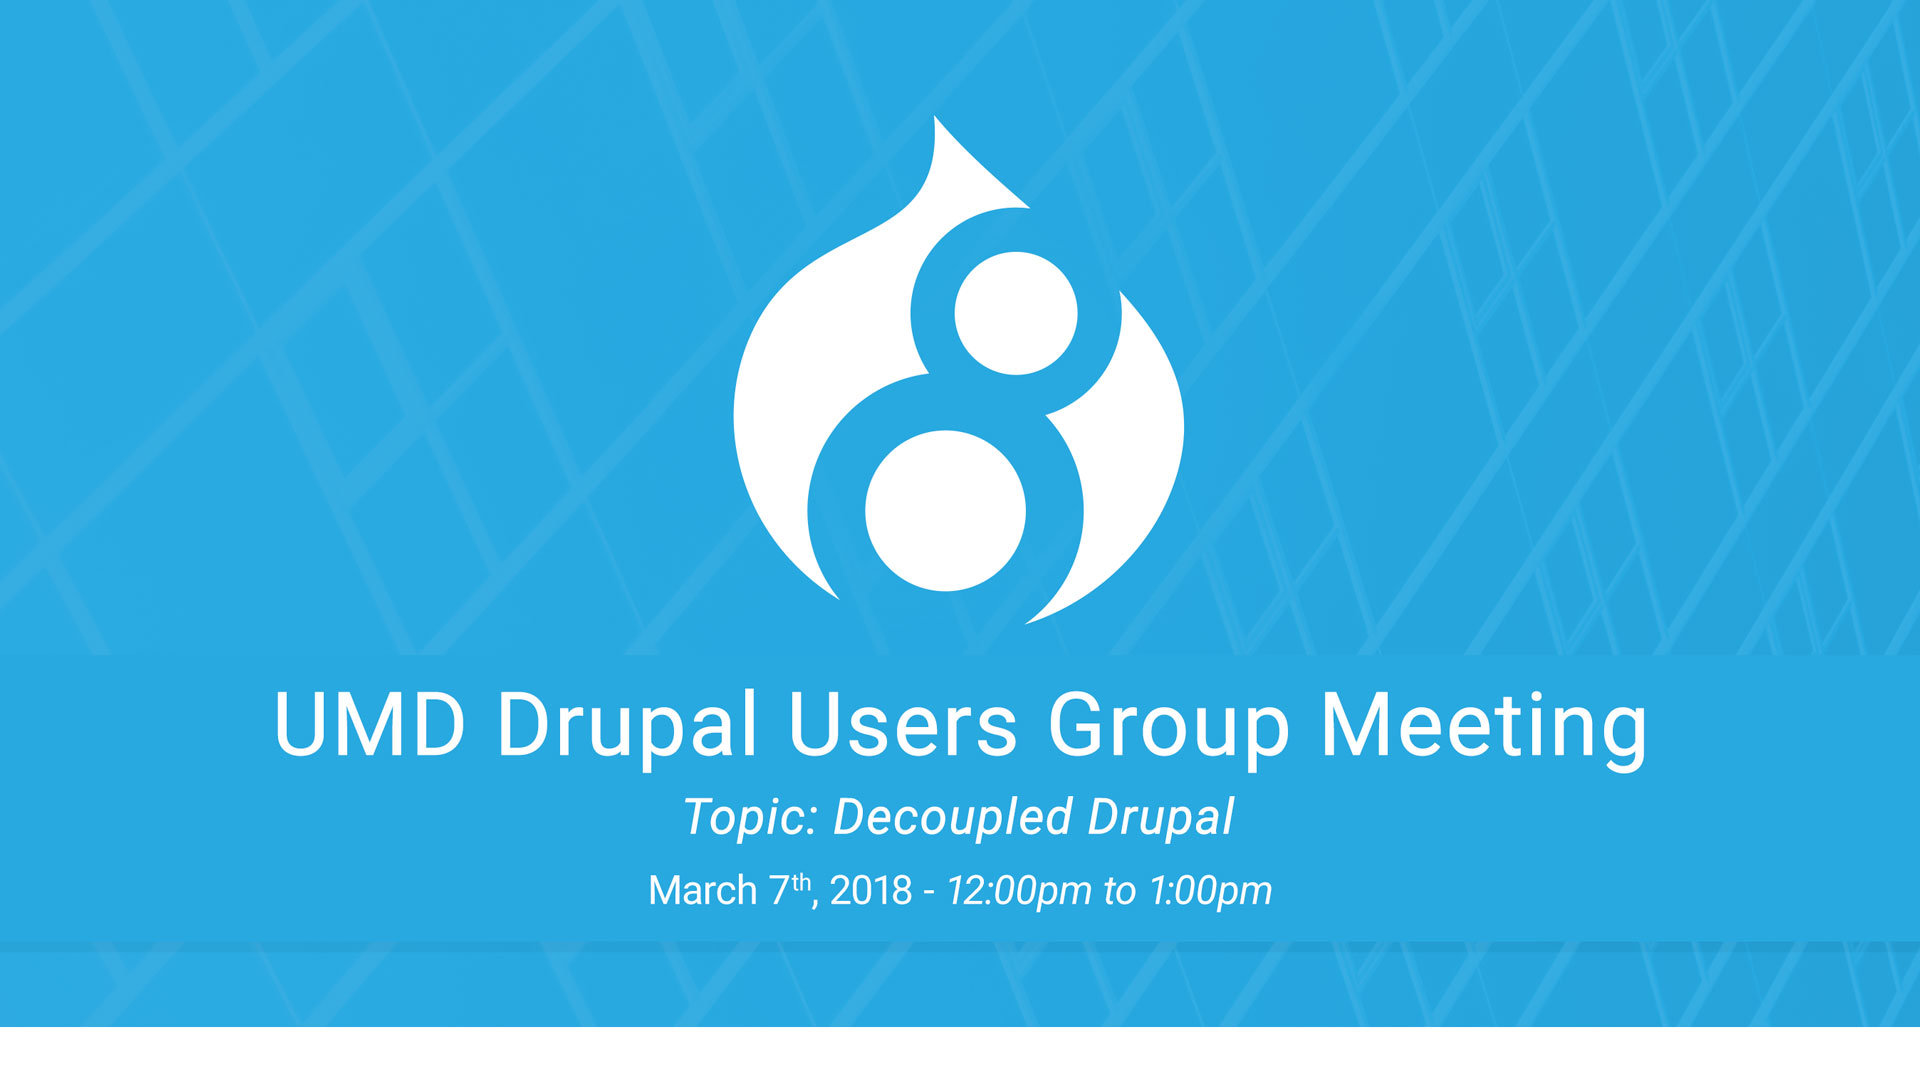 Drupal Users Meeting - Decoupled Drupal